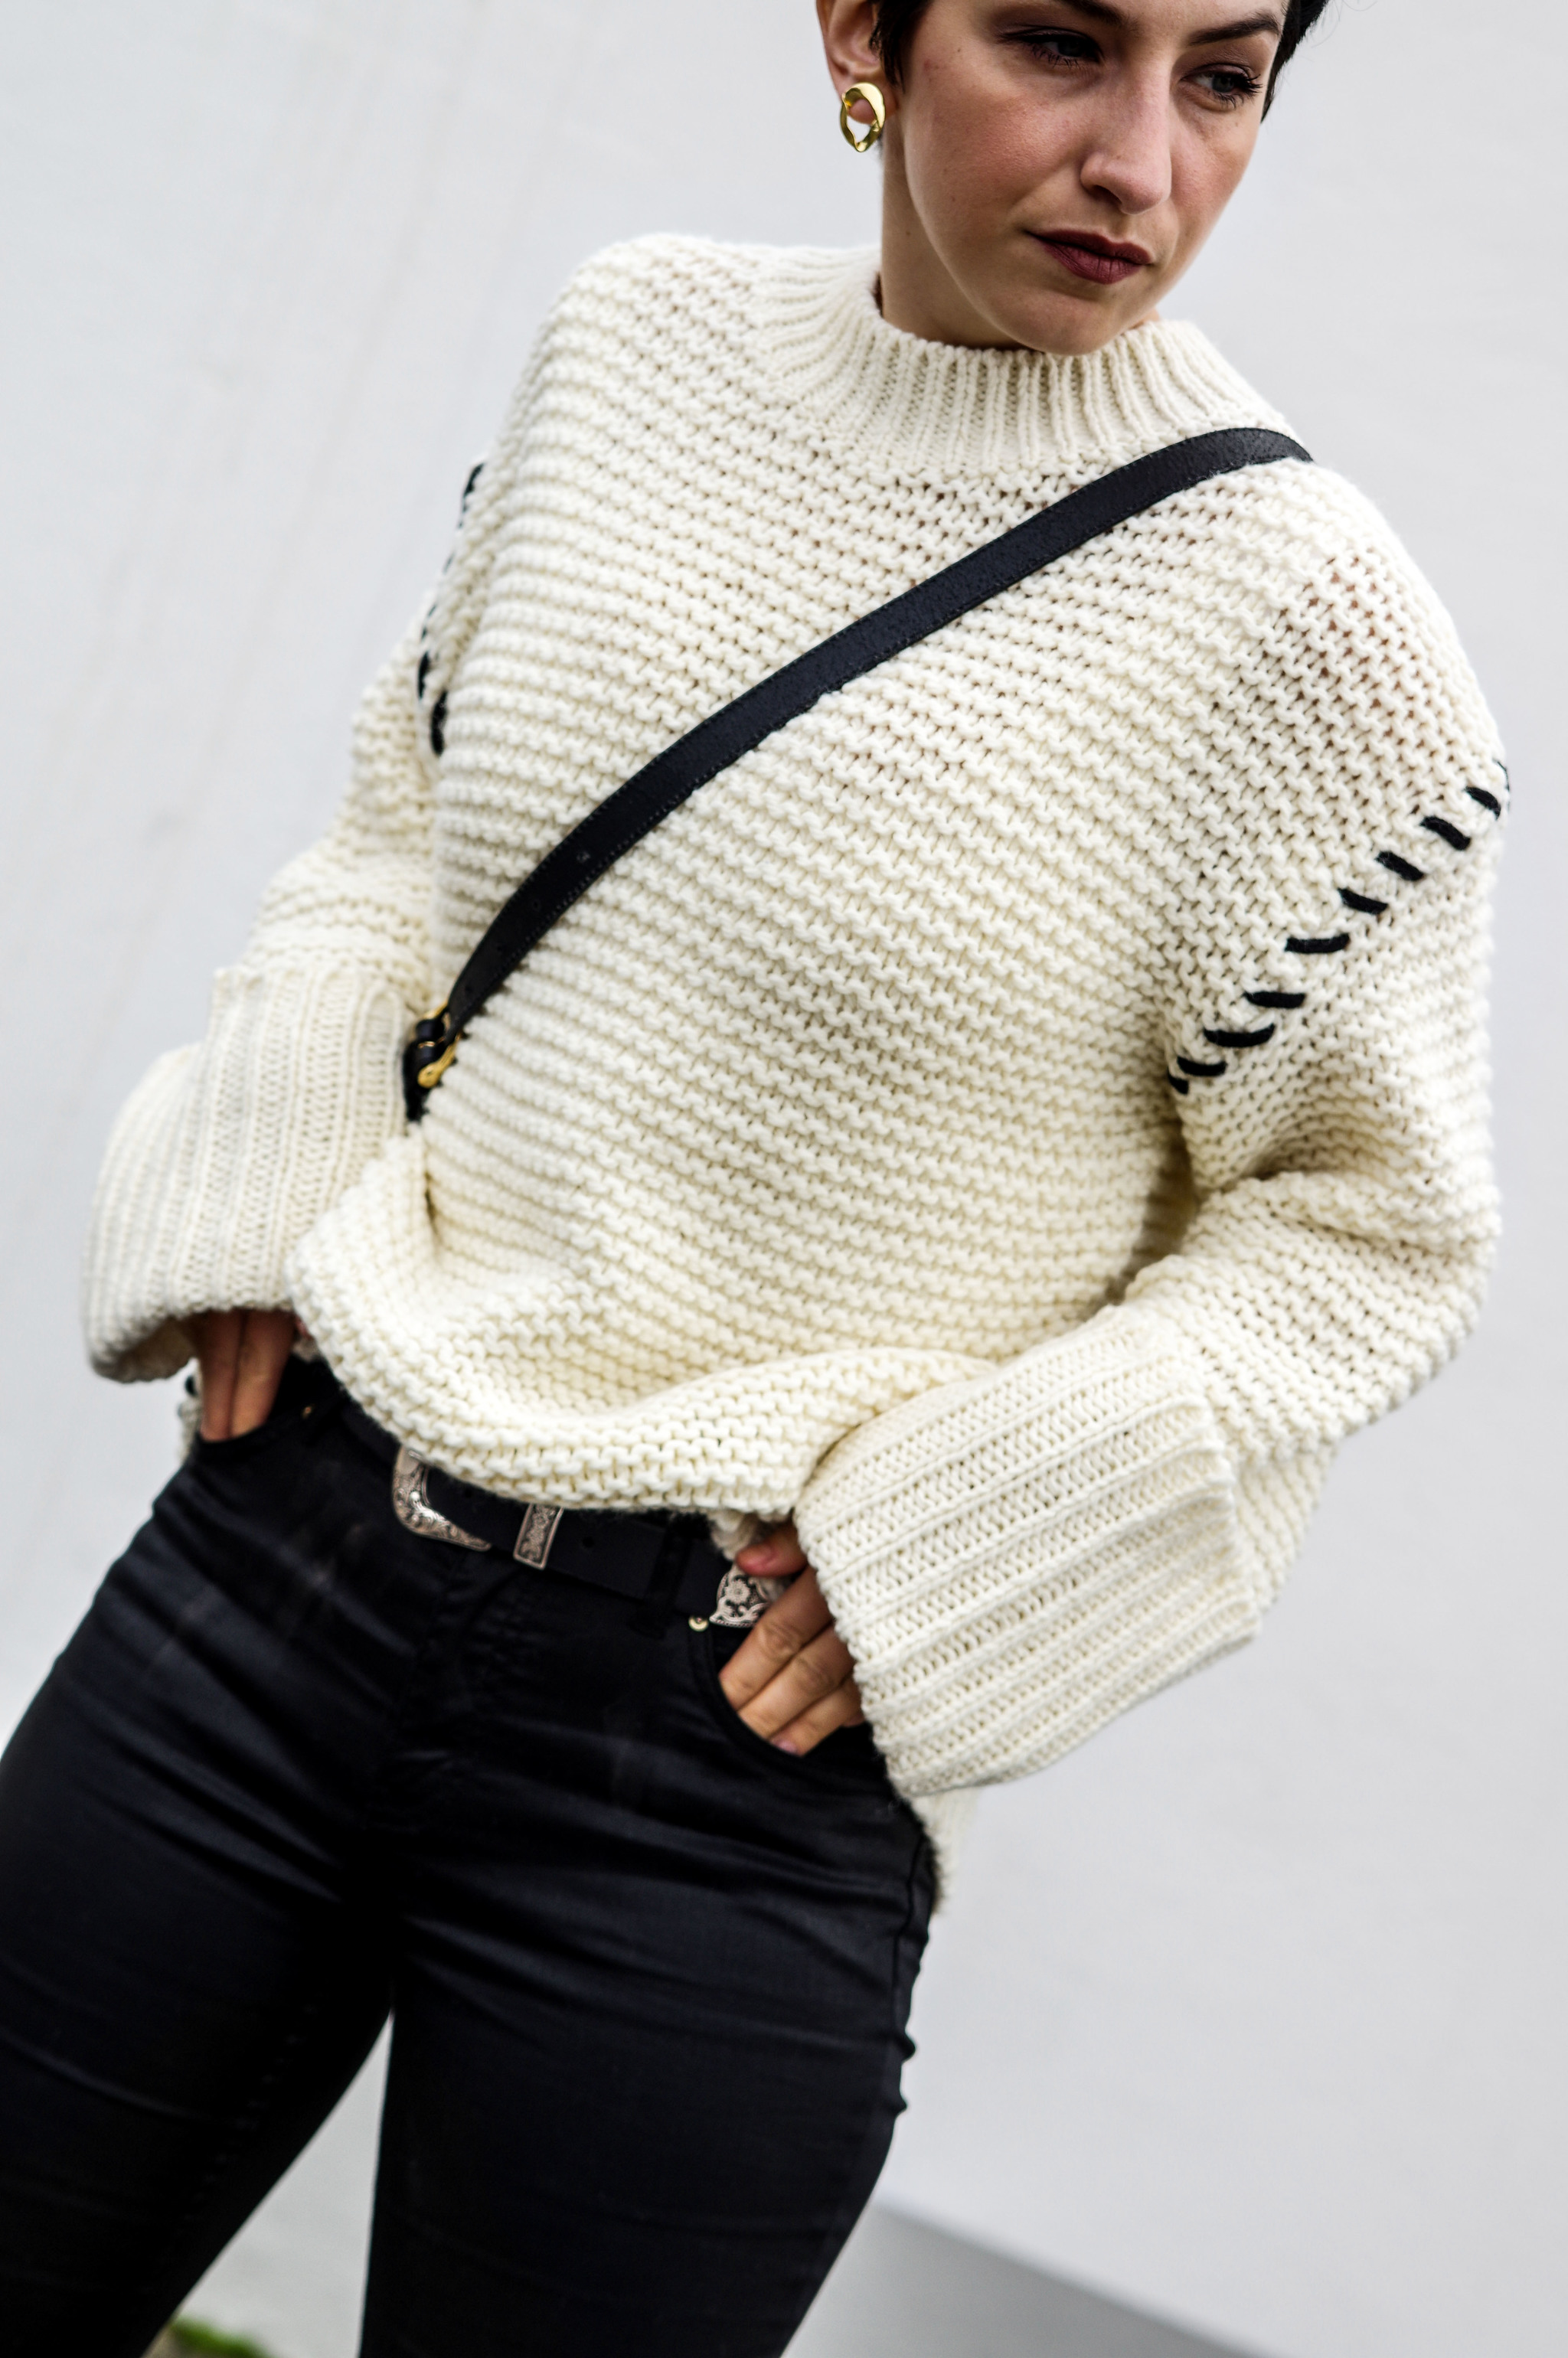 white sweater topshop, holiday outfits, fall winter fashion winter style women fashion